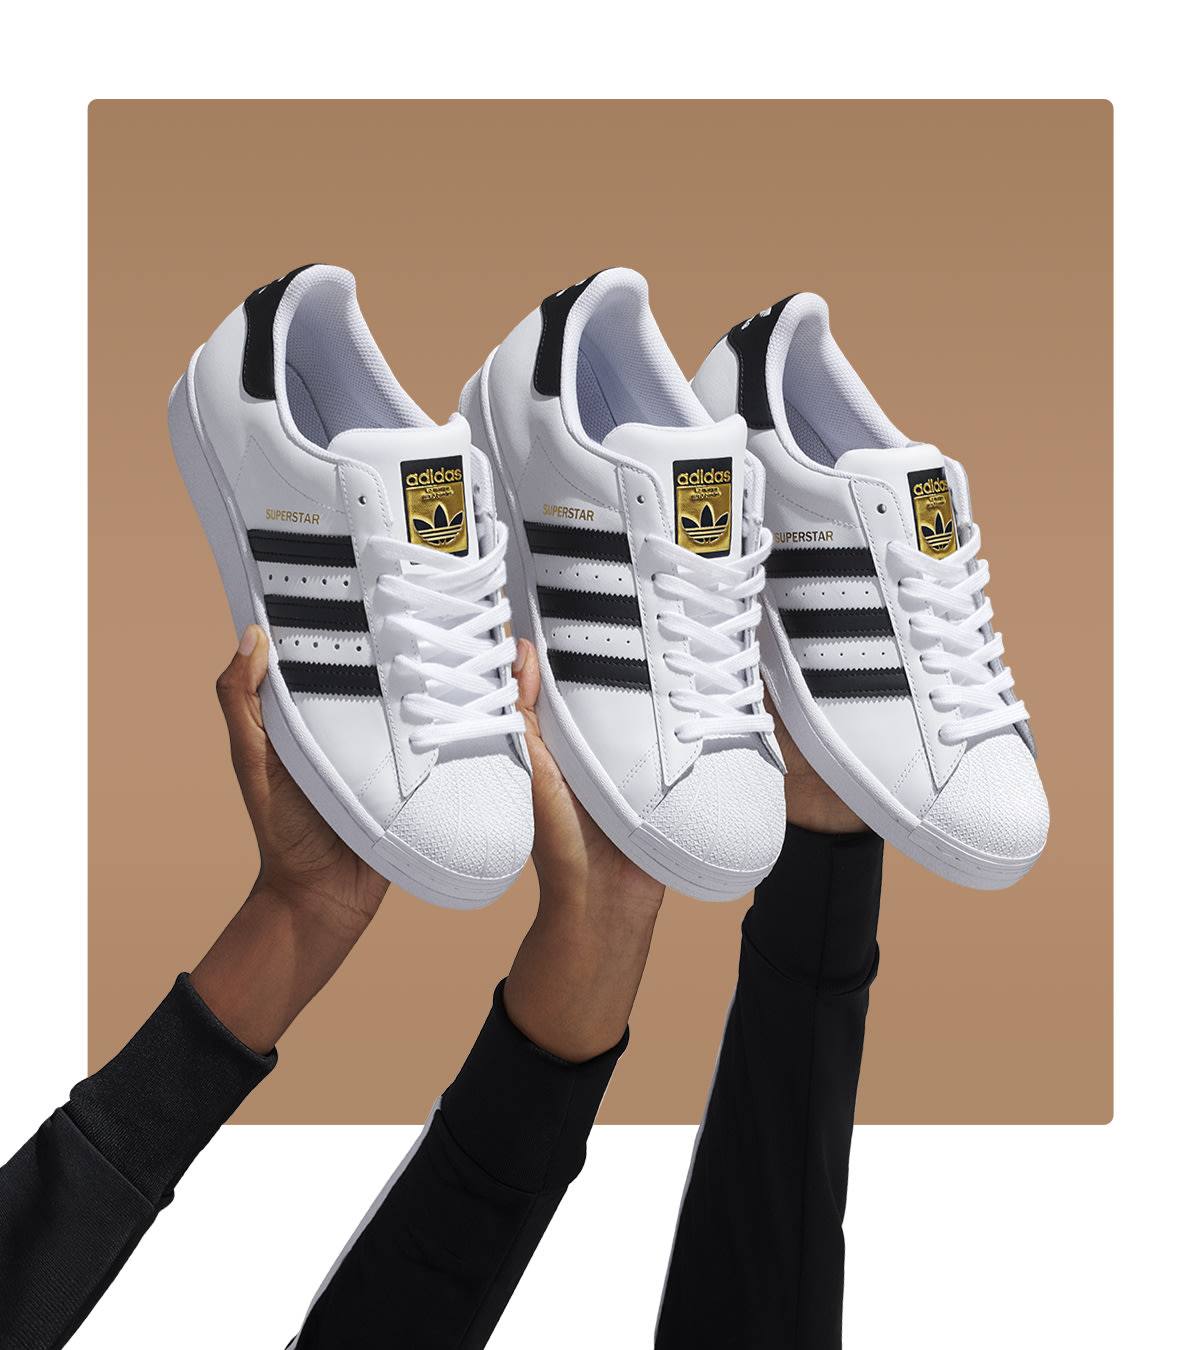 Originals Sneakers & Clothing| adidas US